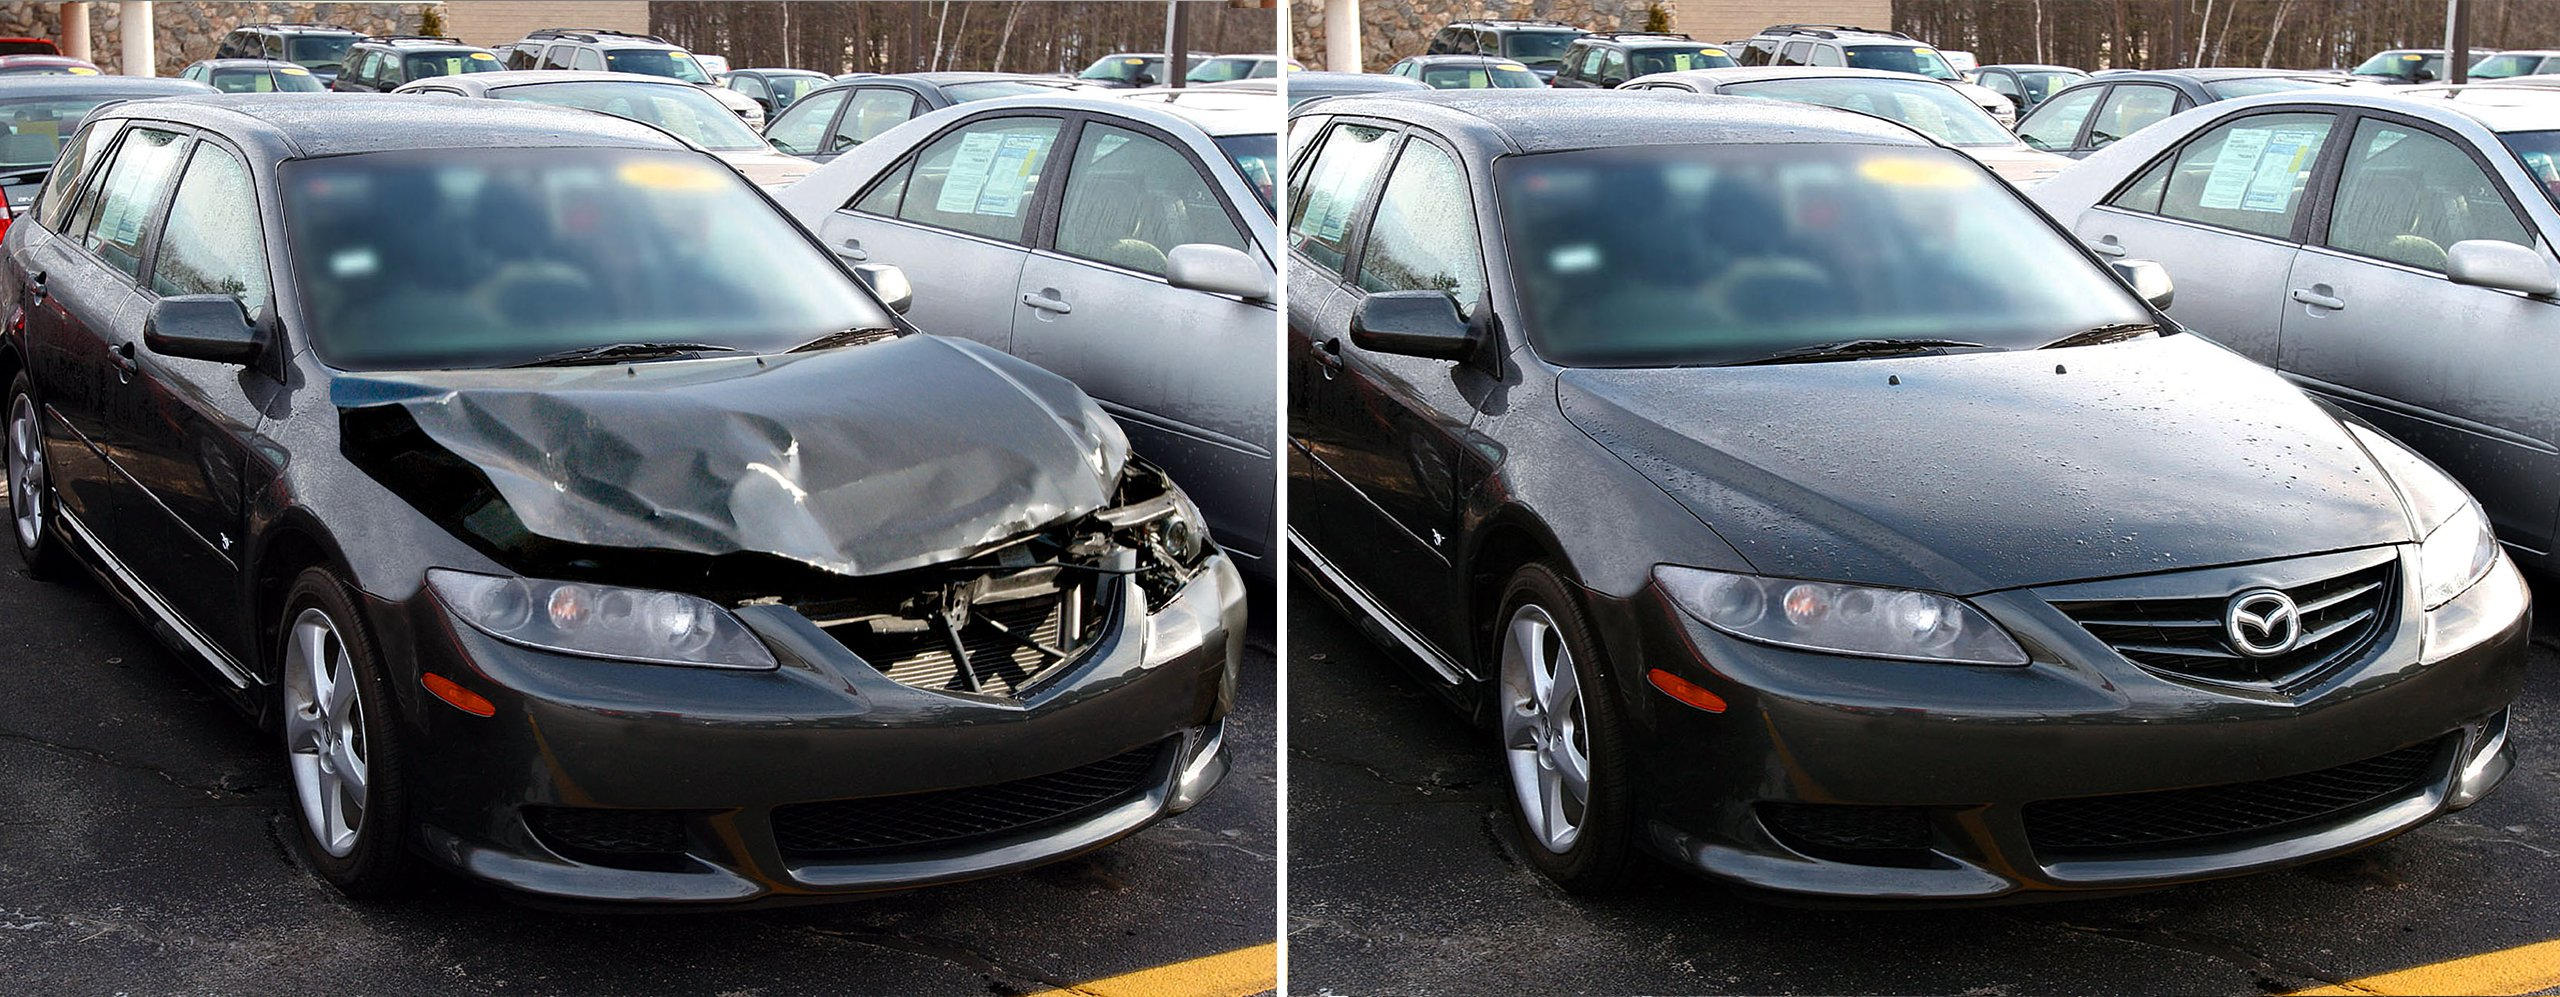 Collision car after and before